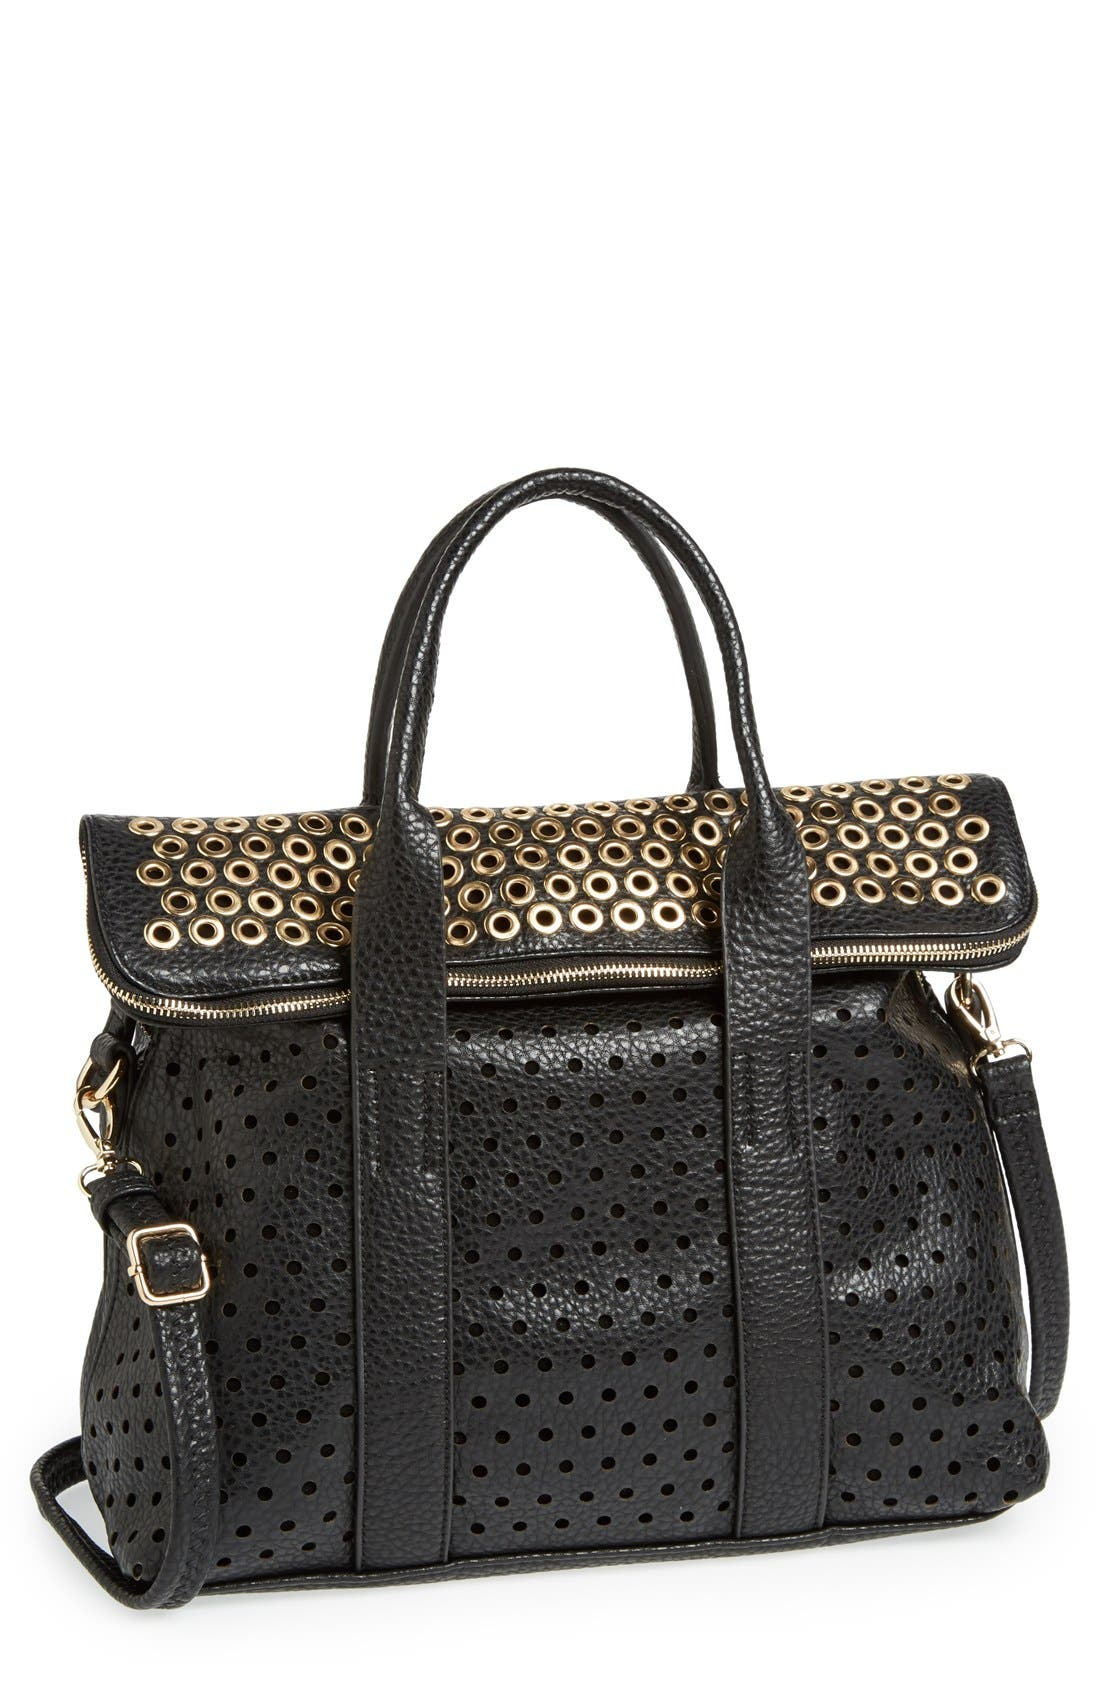 Alternate Image 1 Selected - Expressions NYC Faux Leather Satchel